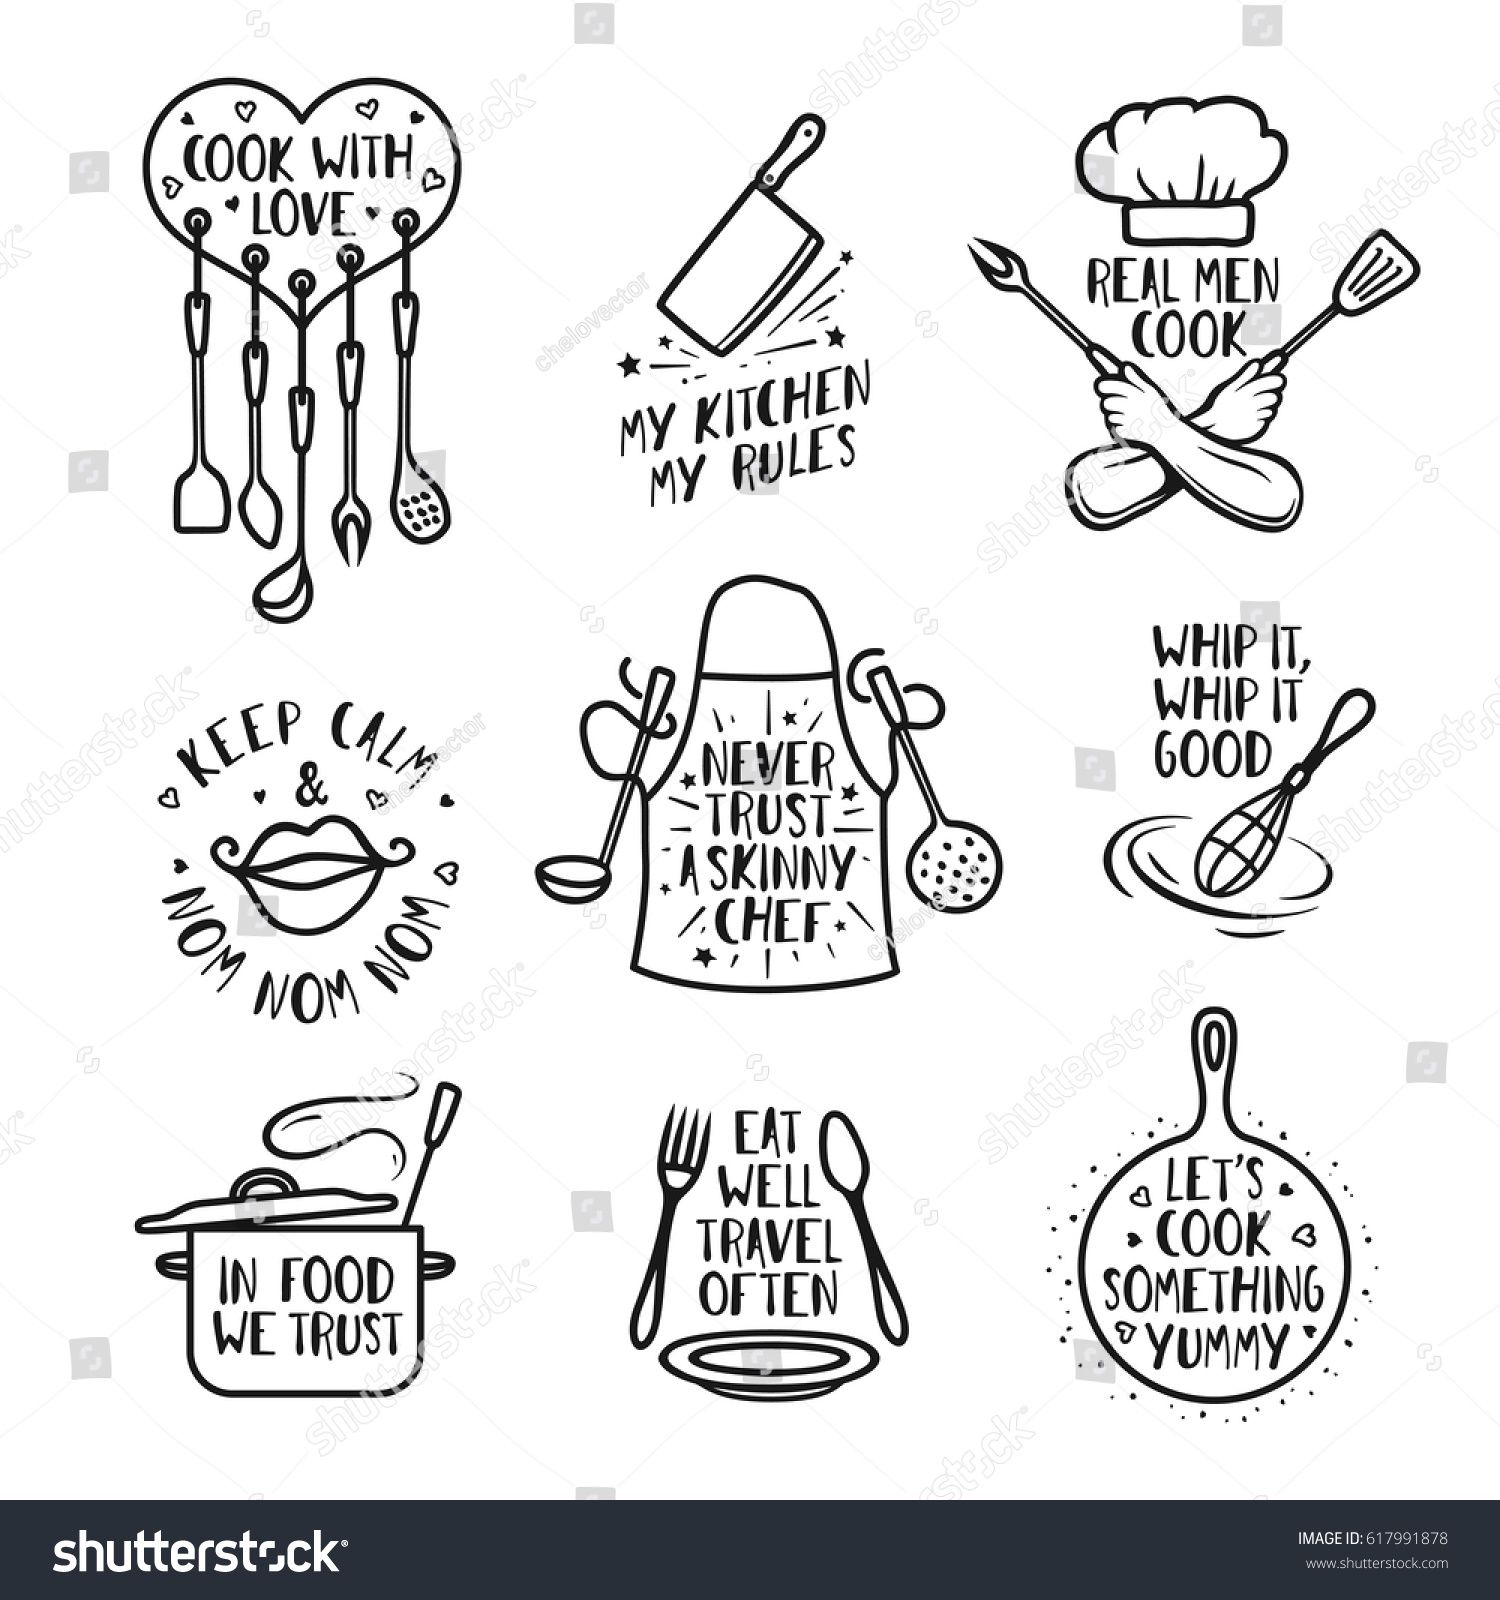 Hand Drawn Kitchen Quotes Set Phrases And Funny Sayings About Cooking Food Wall Decor Art Prints Collecti Kitchen Art Prints Kitchen Quotes How To Draw Hands